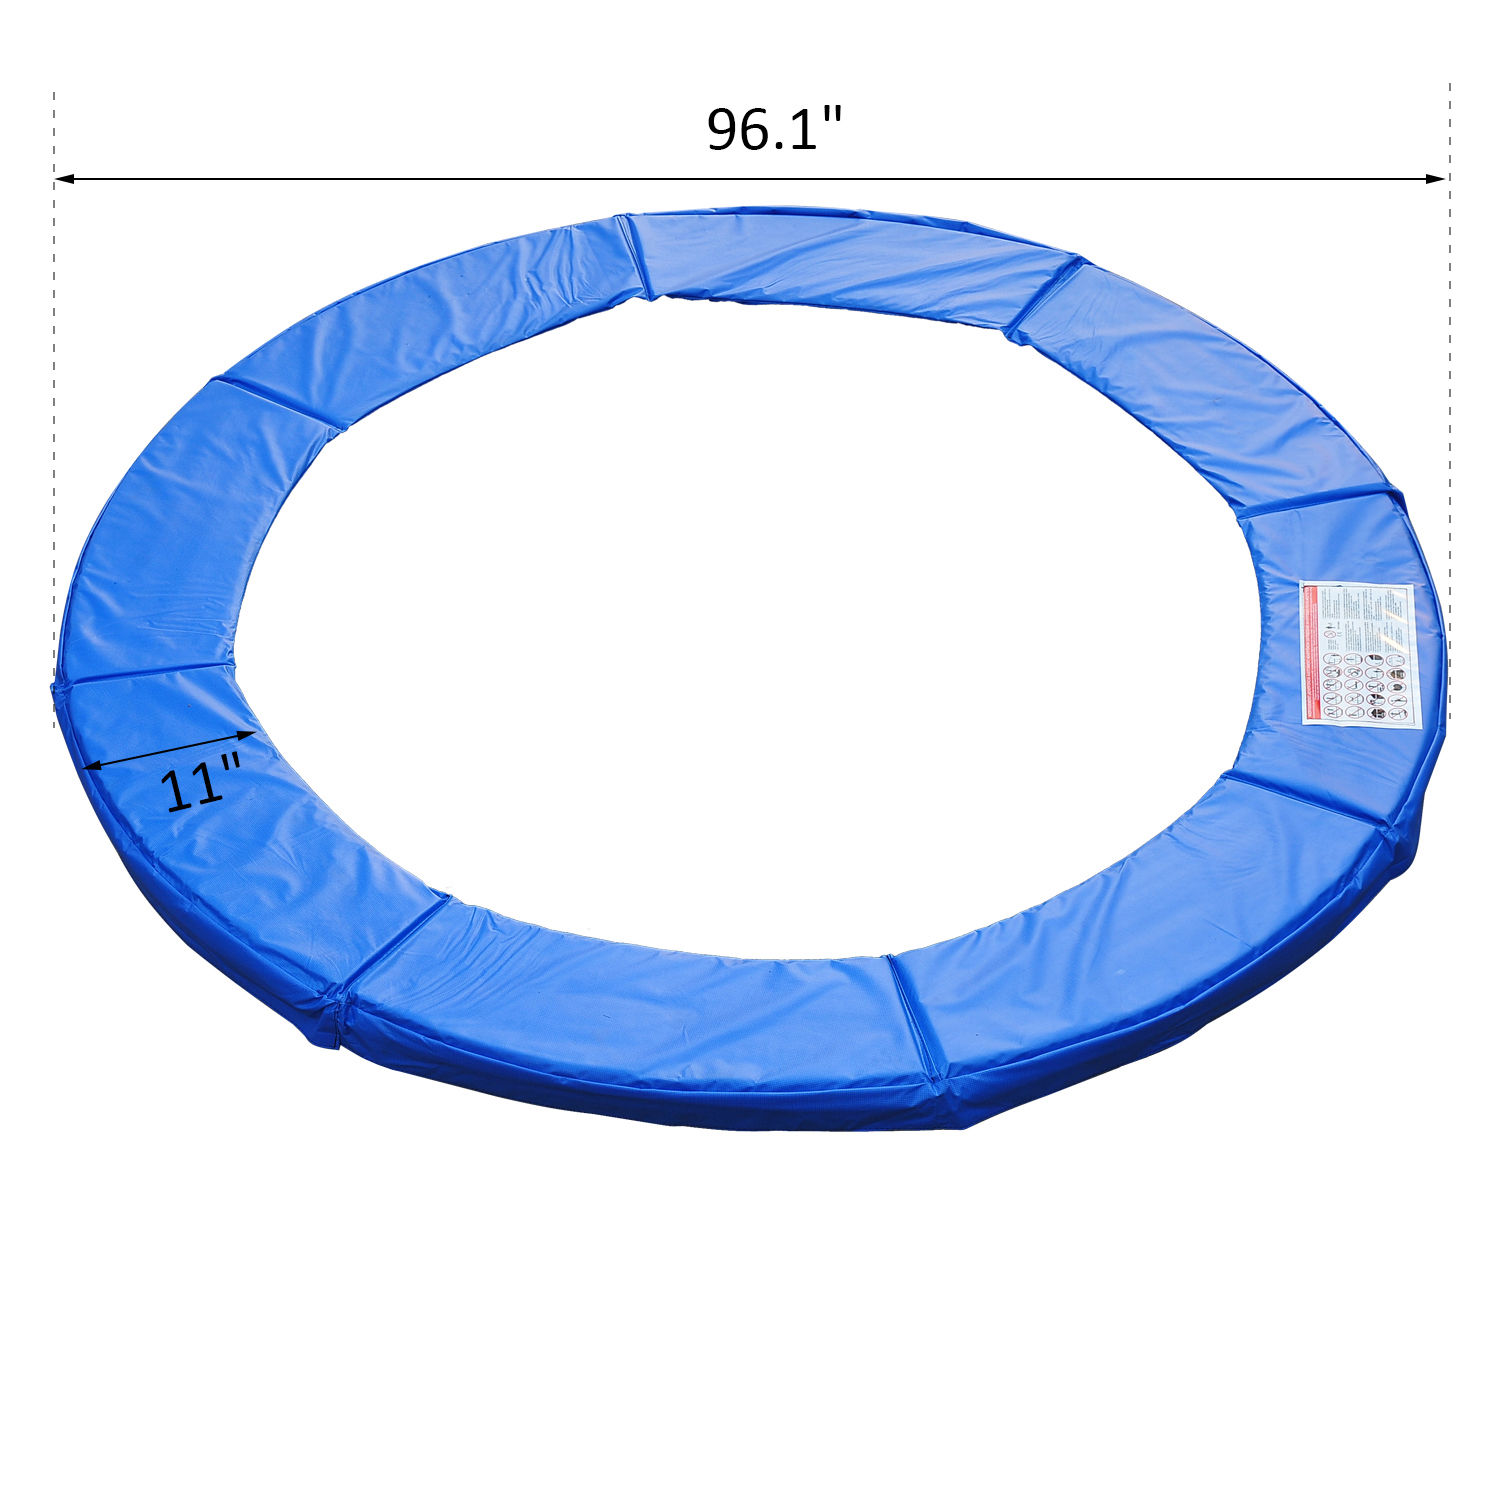 8ft-Trampoline-Pad-Spring-Safety-Replacement-Gym-Bounce-Jump-Cover-EPE-Foam thumbnail 3